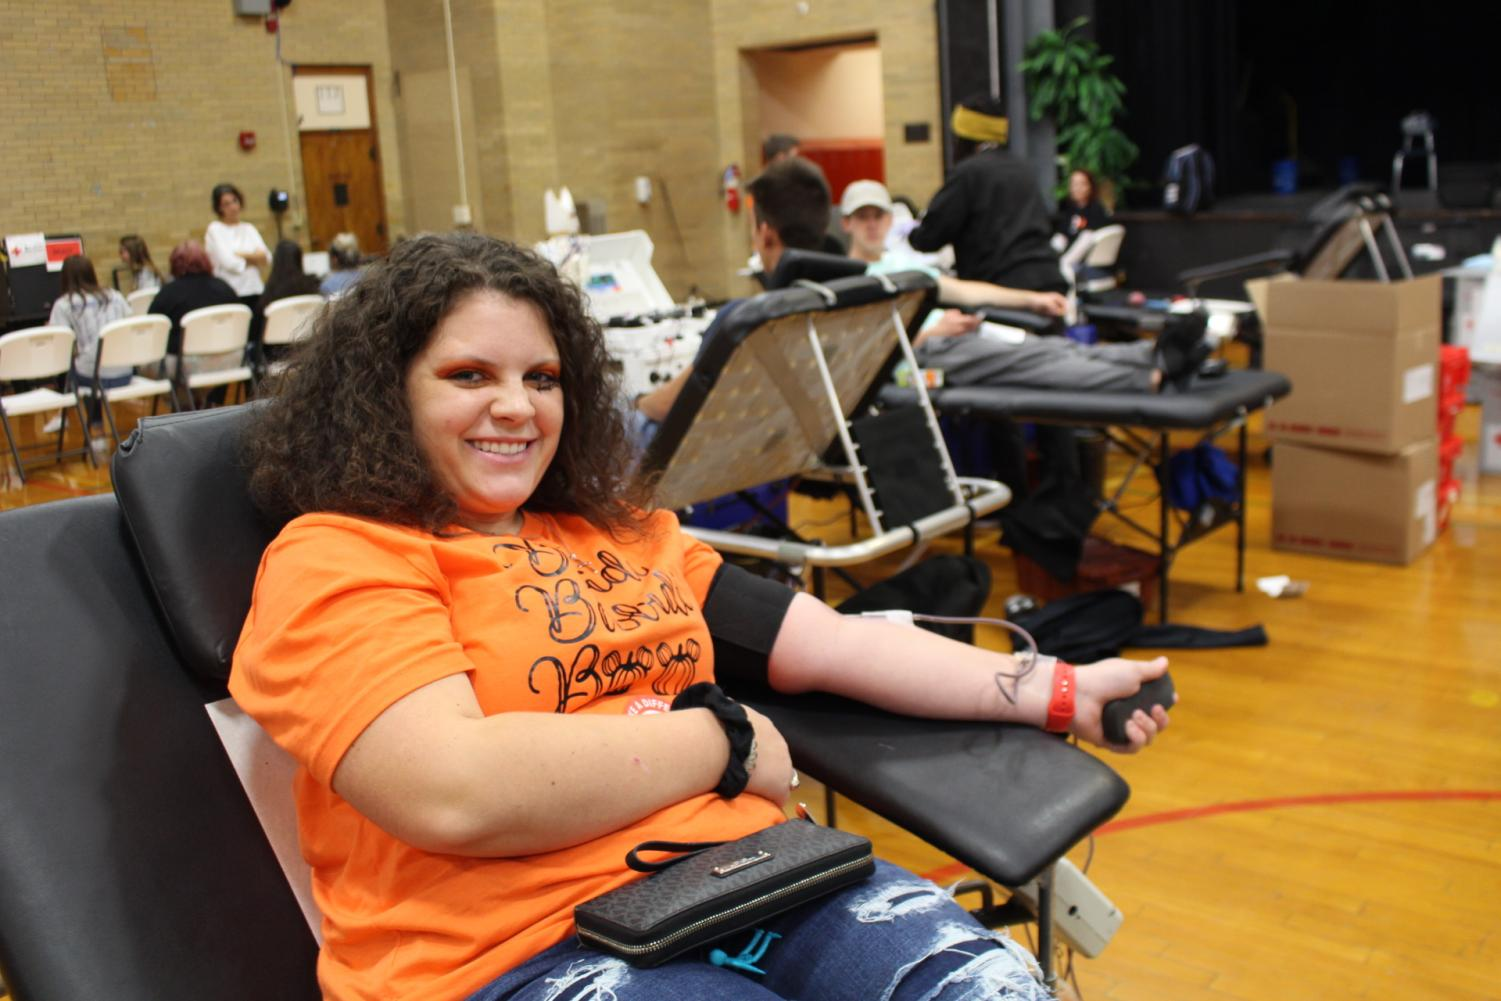 Maeghan Fuller donated blood at the drive Oct. 31.